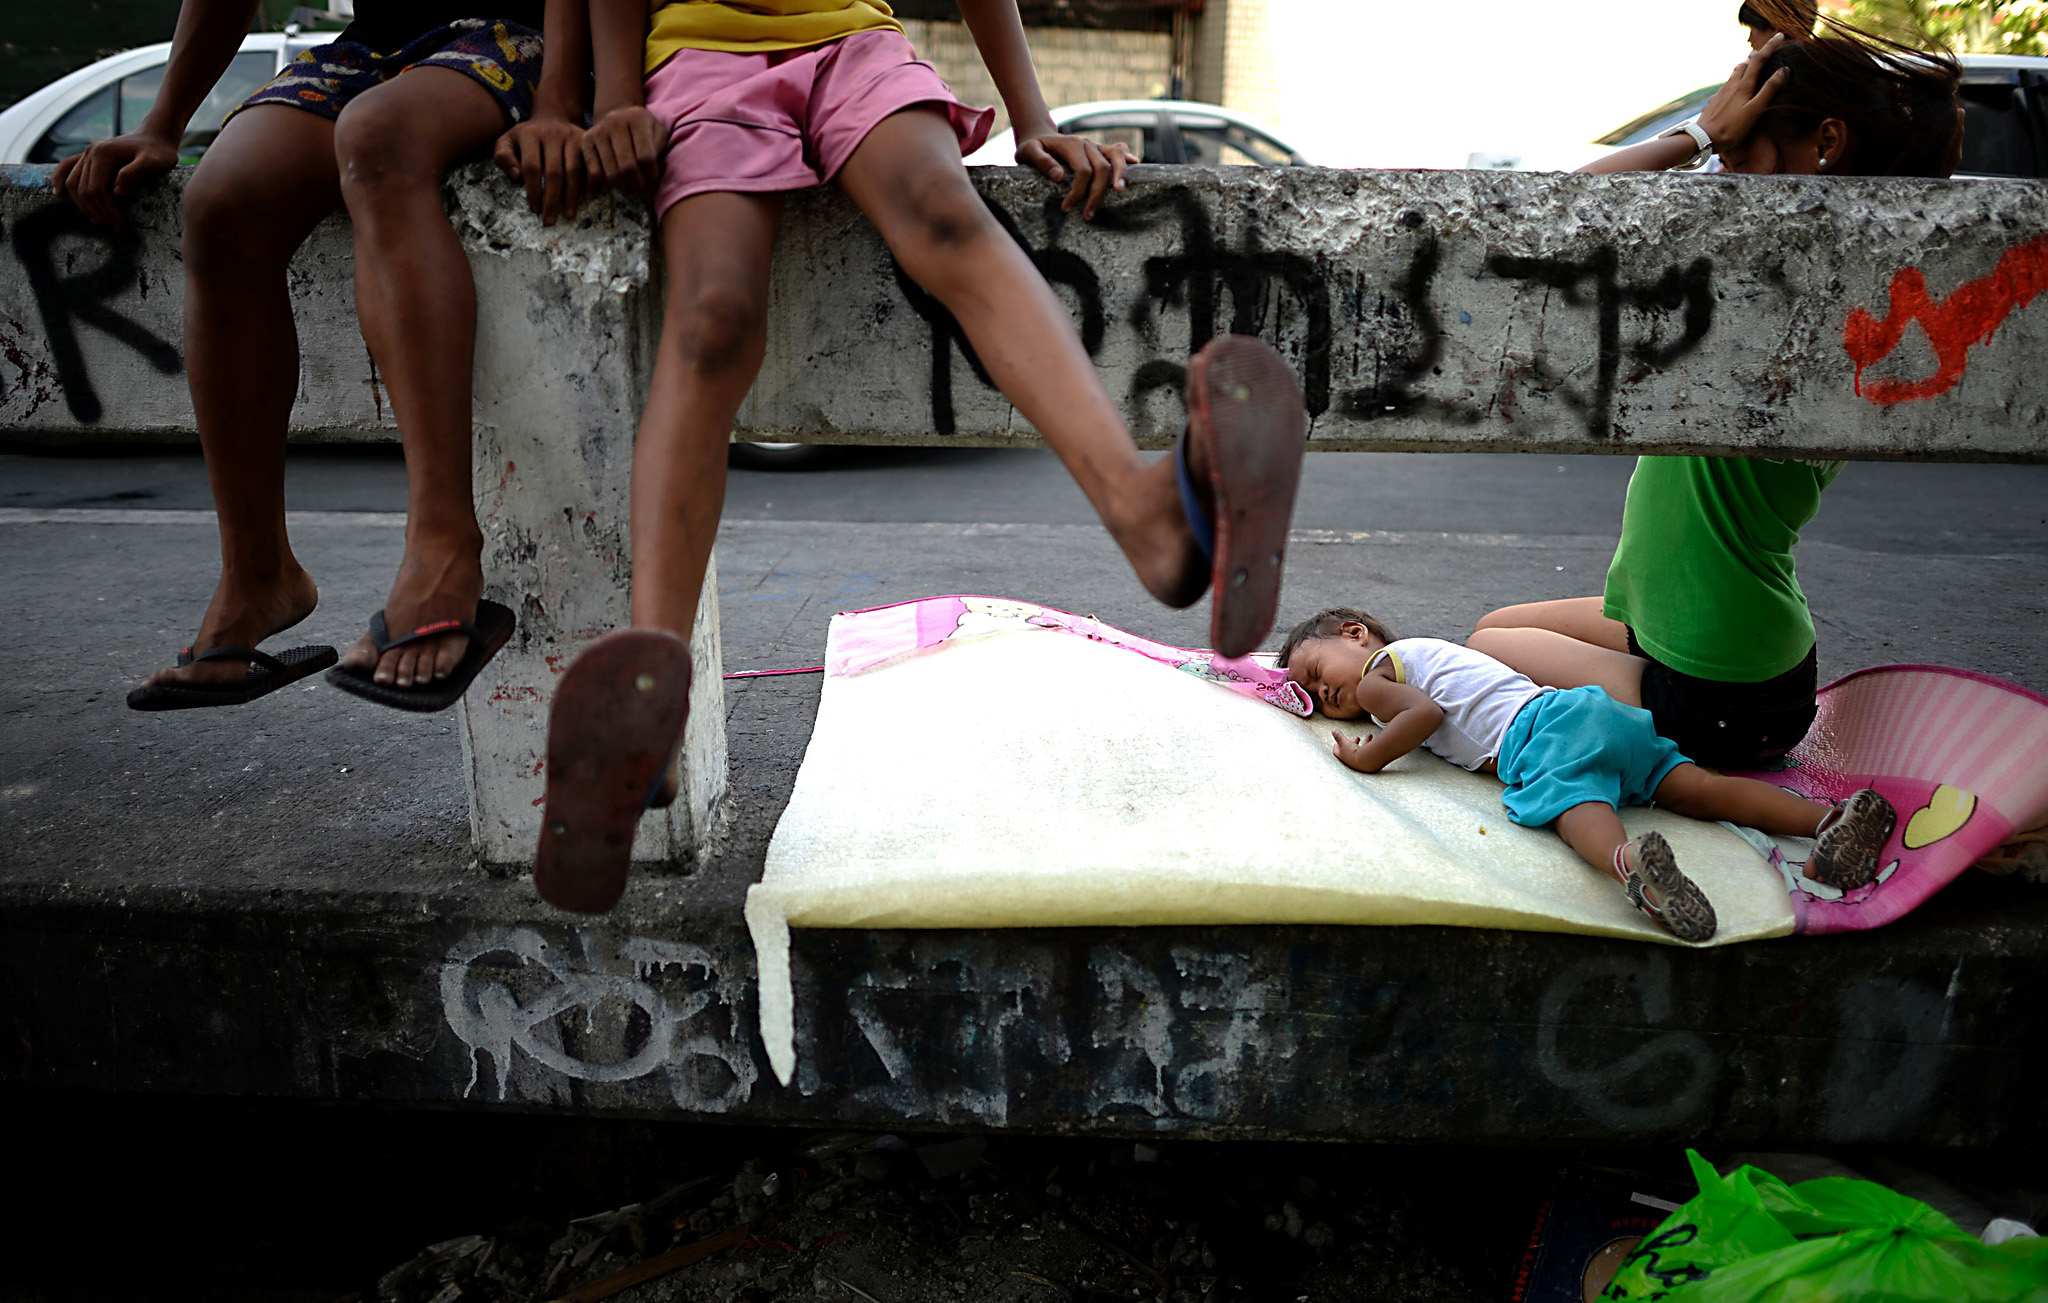 TOPSHOT - A child sleeps on a bridge in ...TOPSHOT - A child sleeps on a bridge in Manila on April 6, 2016.  Roughly one quarter of the nation's 100 million people live in poverty, which is defined as surviving on about one US dollar a day, according to government data / AFP PHOTO / NOEL CELISNOEL CELIS/AFP/Getty Images